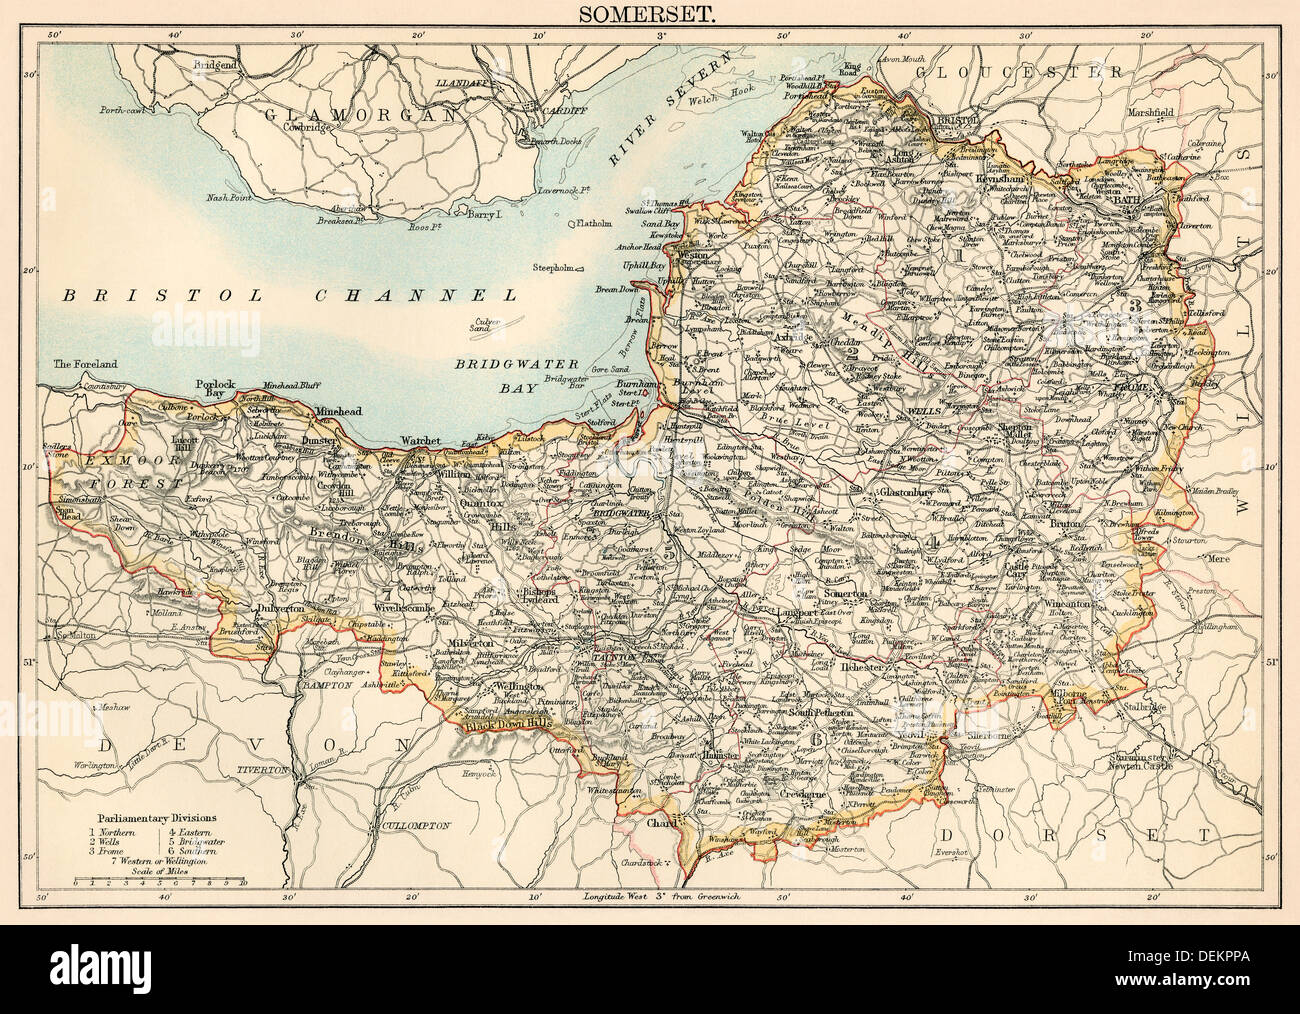 Map of Somerset England 1870s Color lithograph